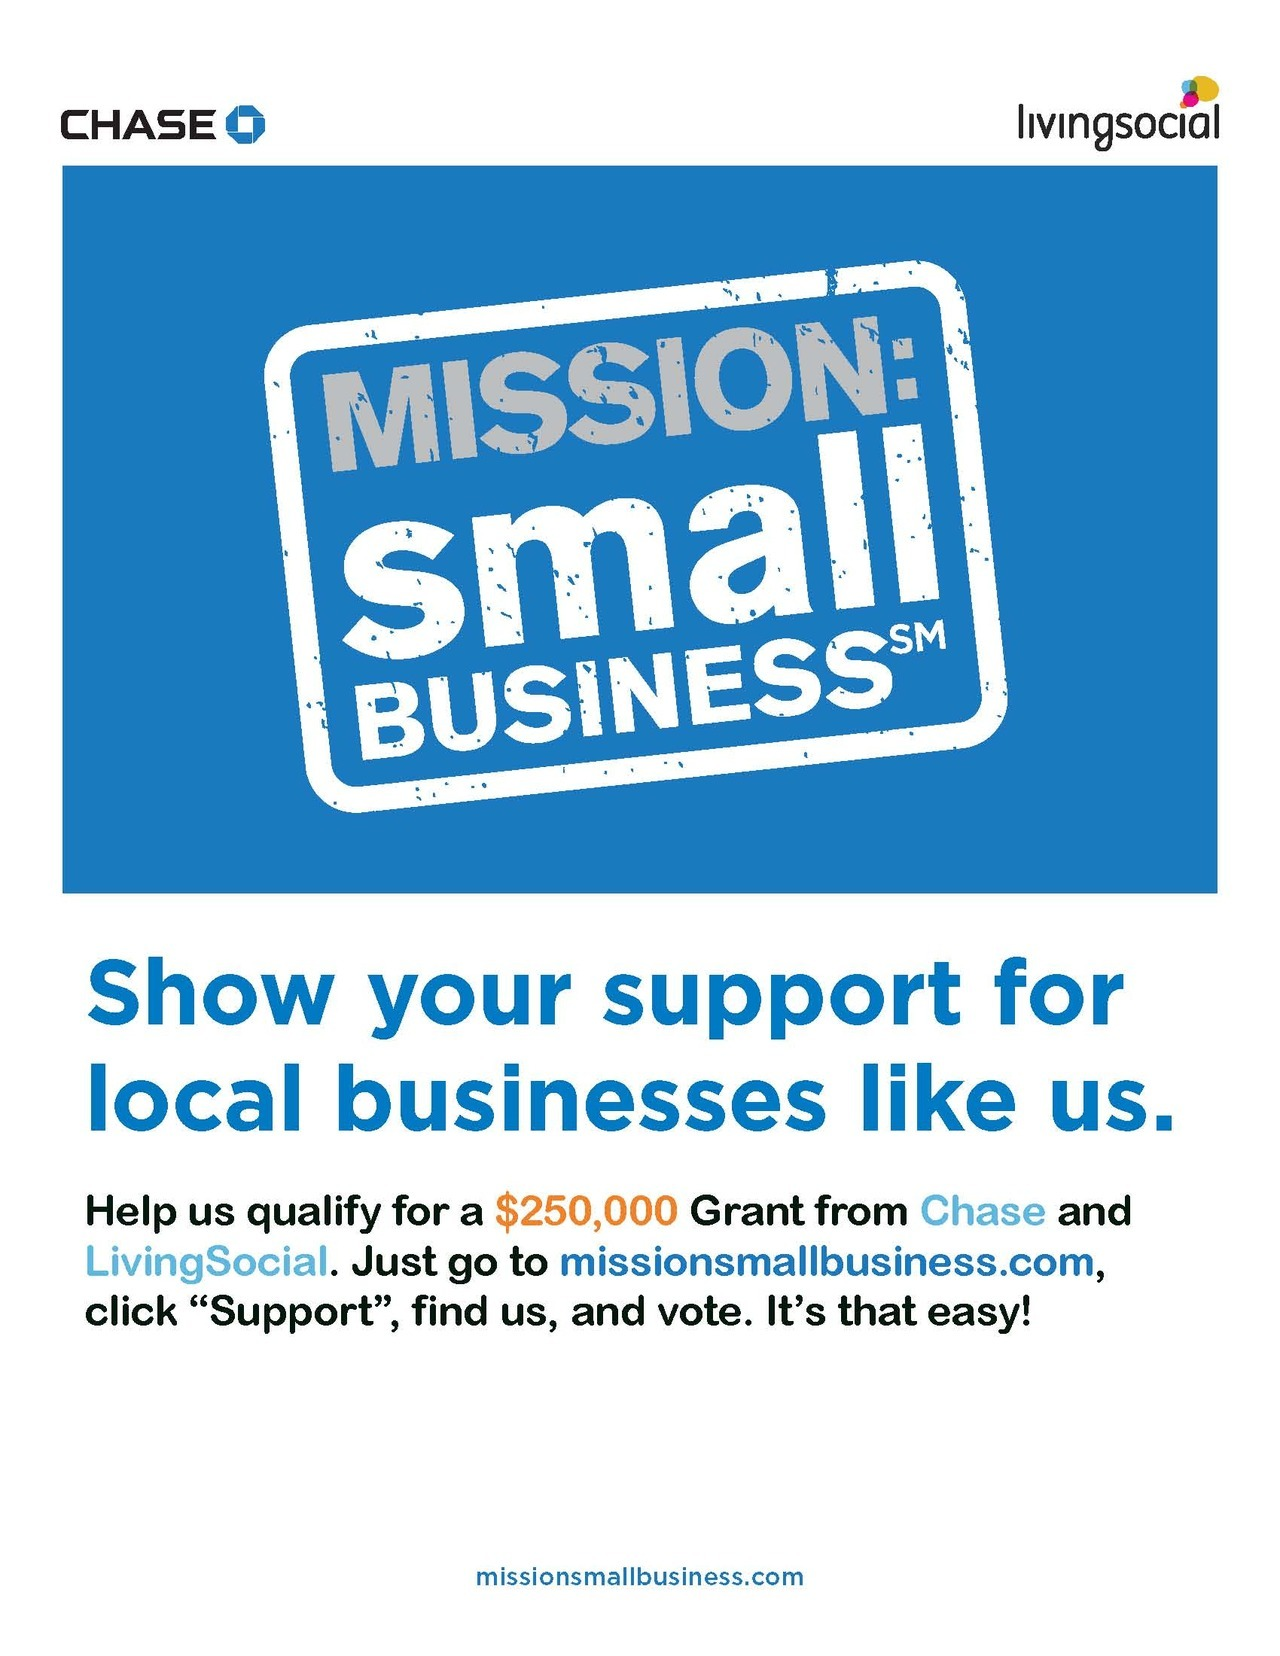 "Help us receive 250 votes on the Mission: Small Business℠ page to get closer to qualifying for a $250,000 Grant. After clicking ""Support"" on the home page, look for our business and vote for us Prajje 1983"